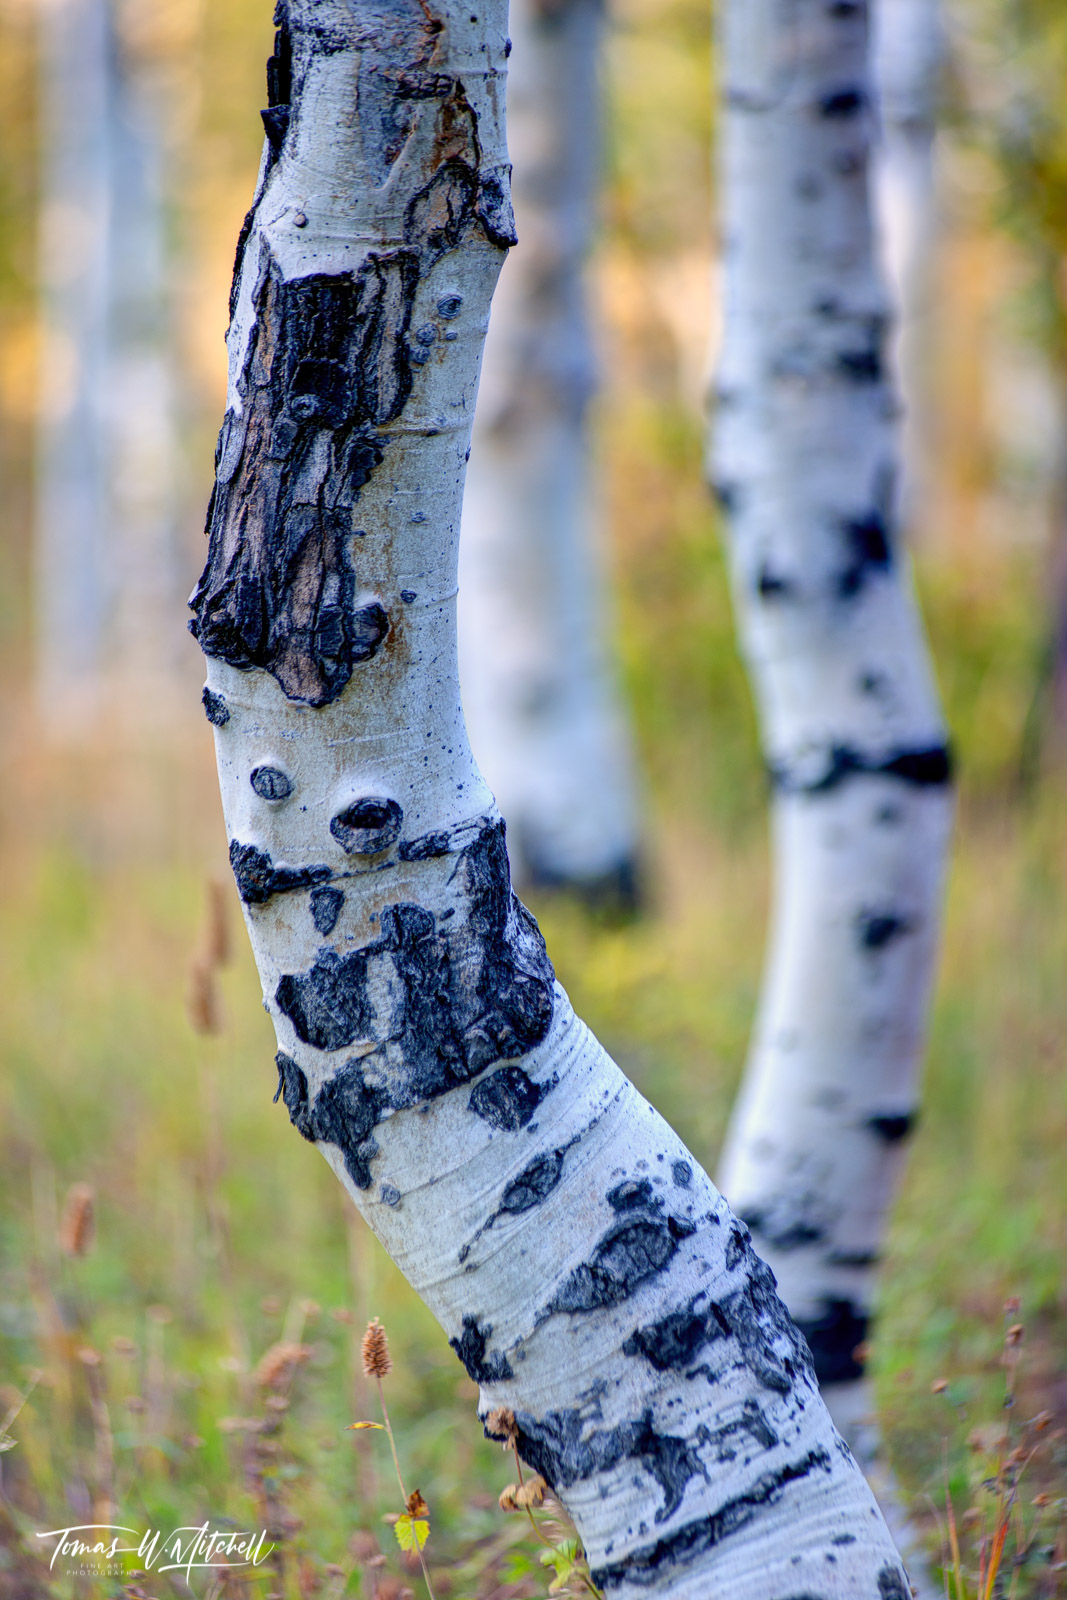 limited edition, museum grade, fine art, prints, aspen, dance, alpine loop, utah, aspen trees, photograph, fall, forest, white, aspen trunks, photo